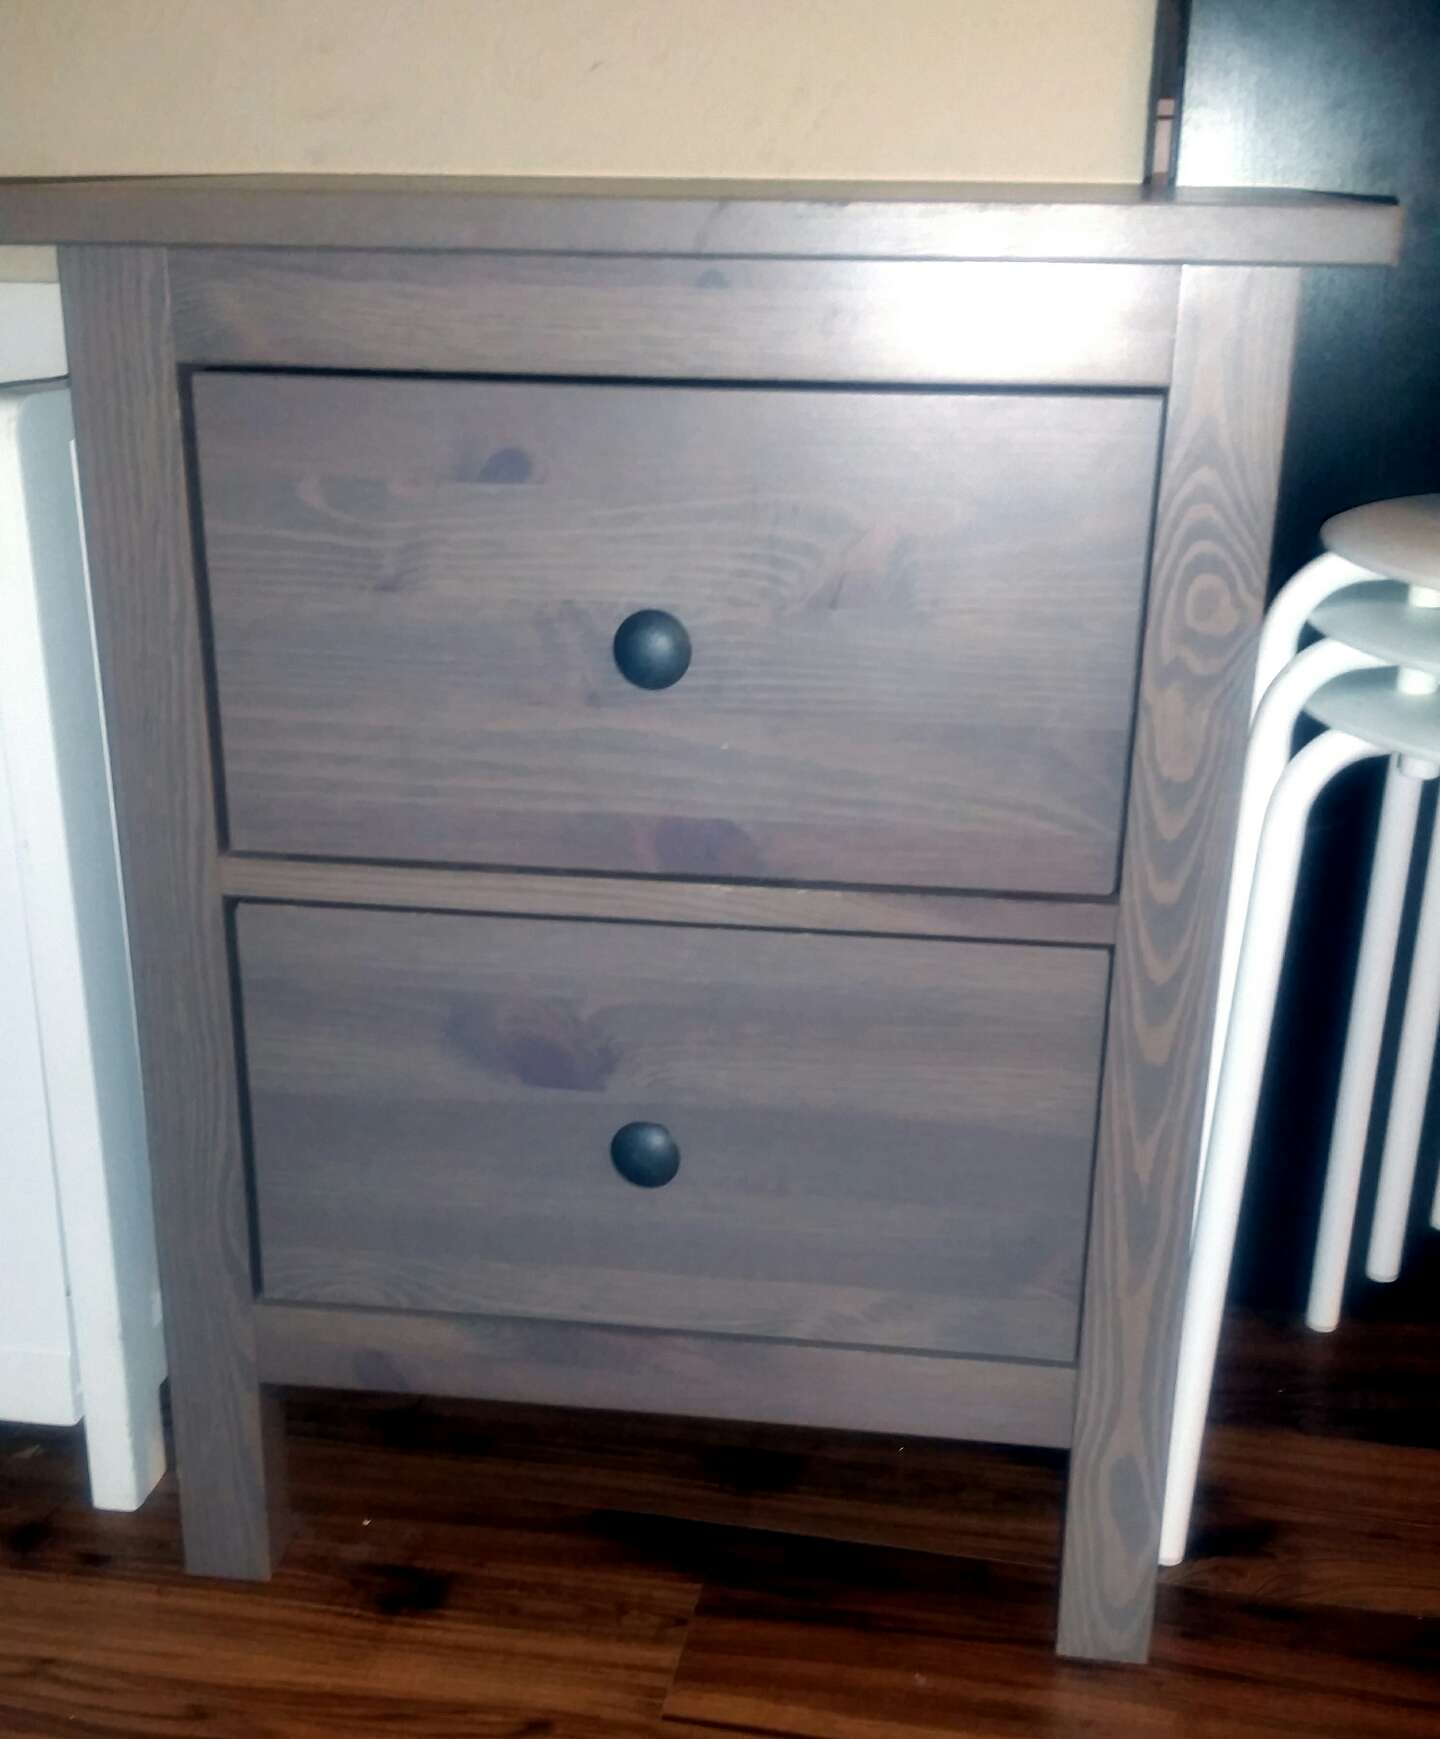 IKEA HEMNES 2 Drawer Nightstand Gray Brown (Discontinued Limited Time)The drawe for sale in